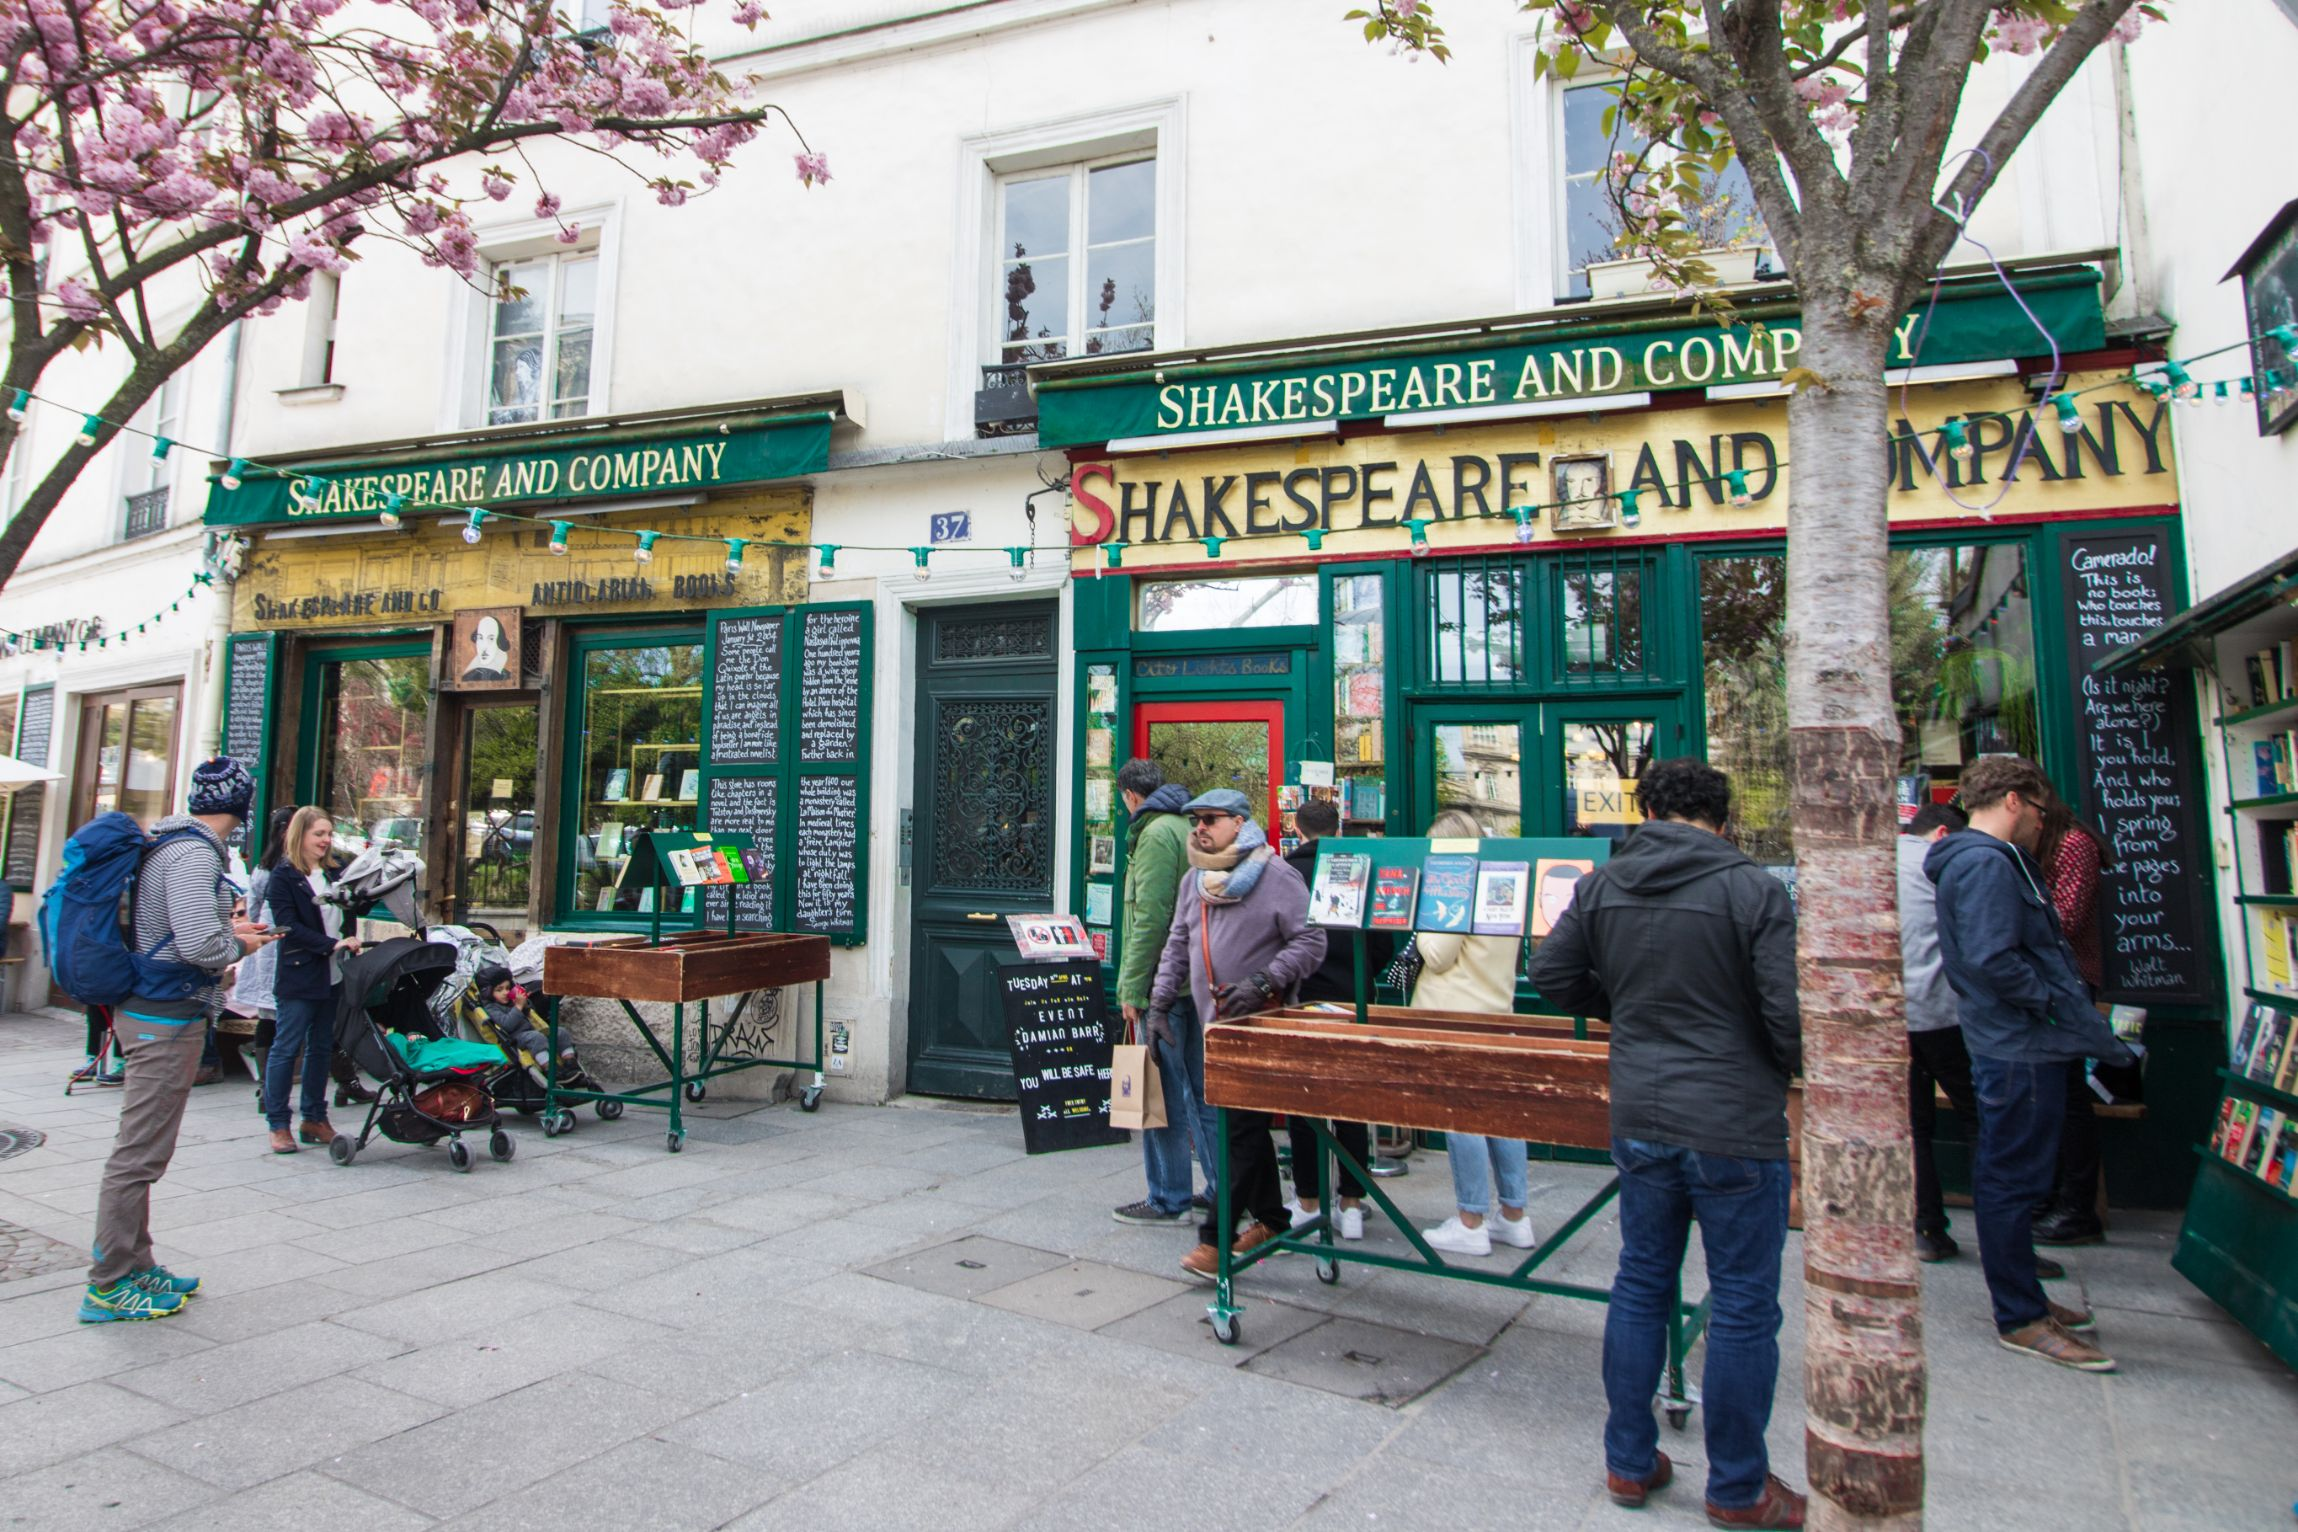 Shakespeare and Company Bookshop Paris. People browsing books outside a bookshop in Spring with blossom trees in foreground.